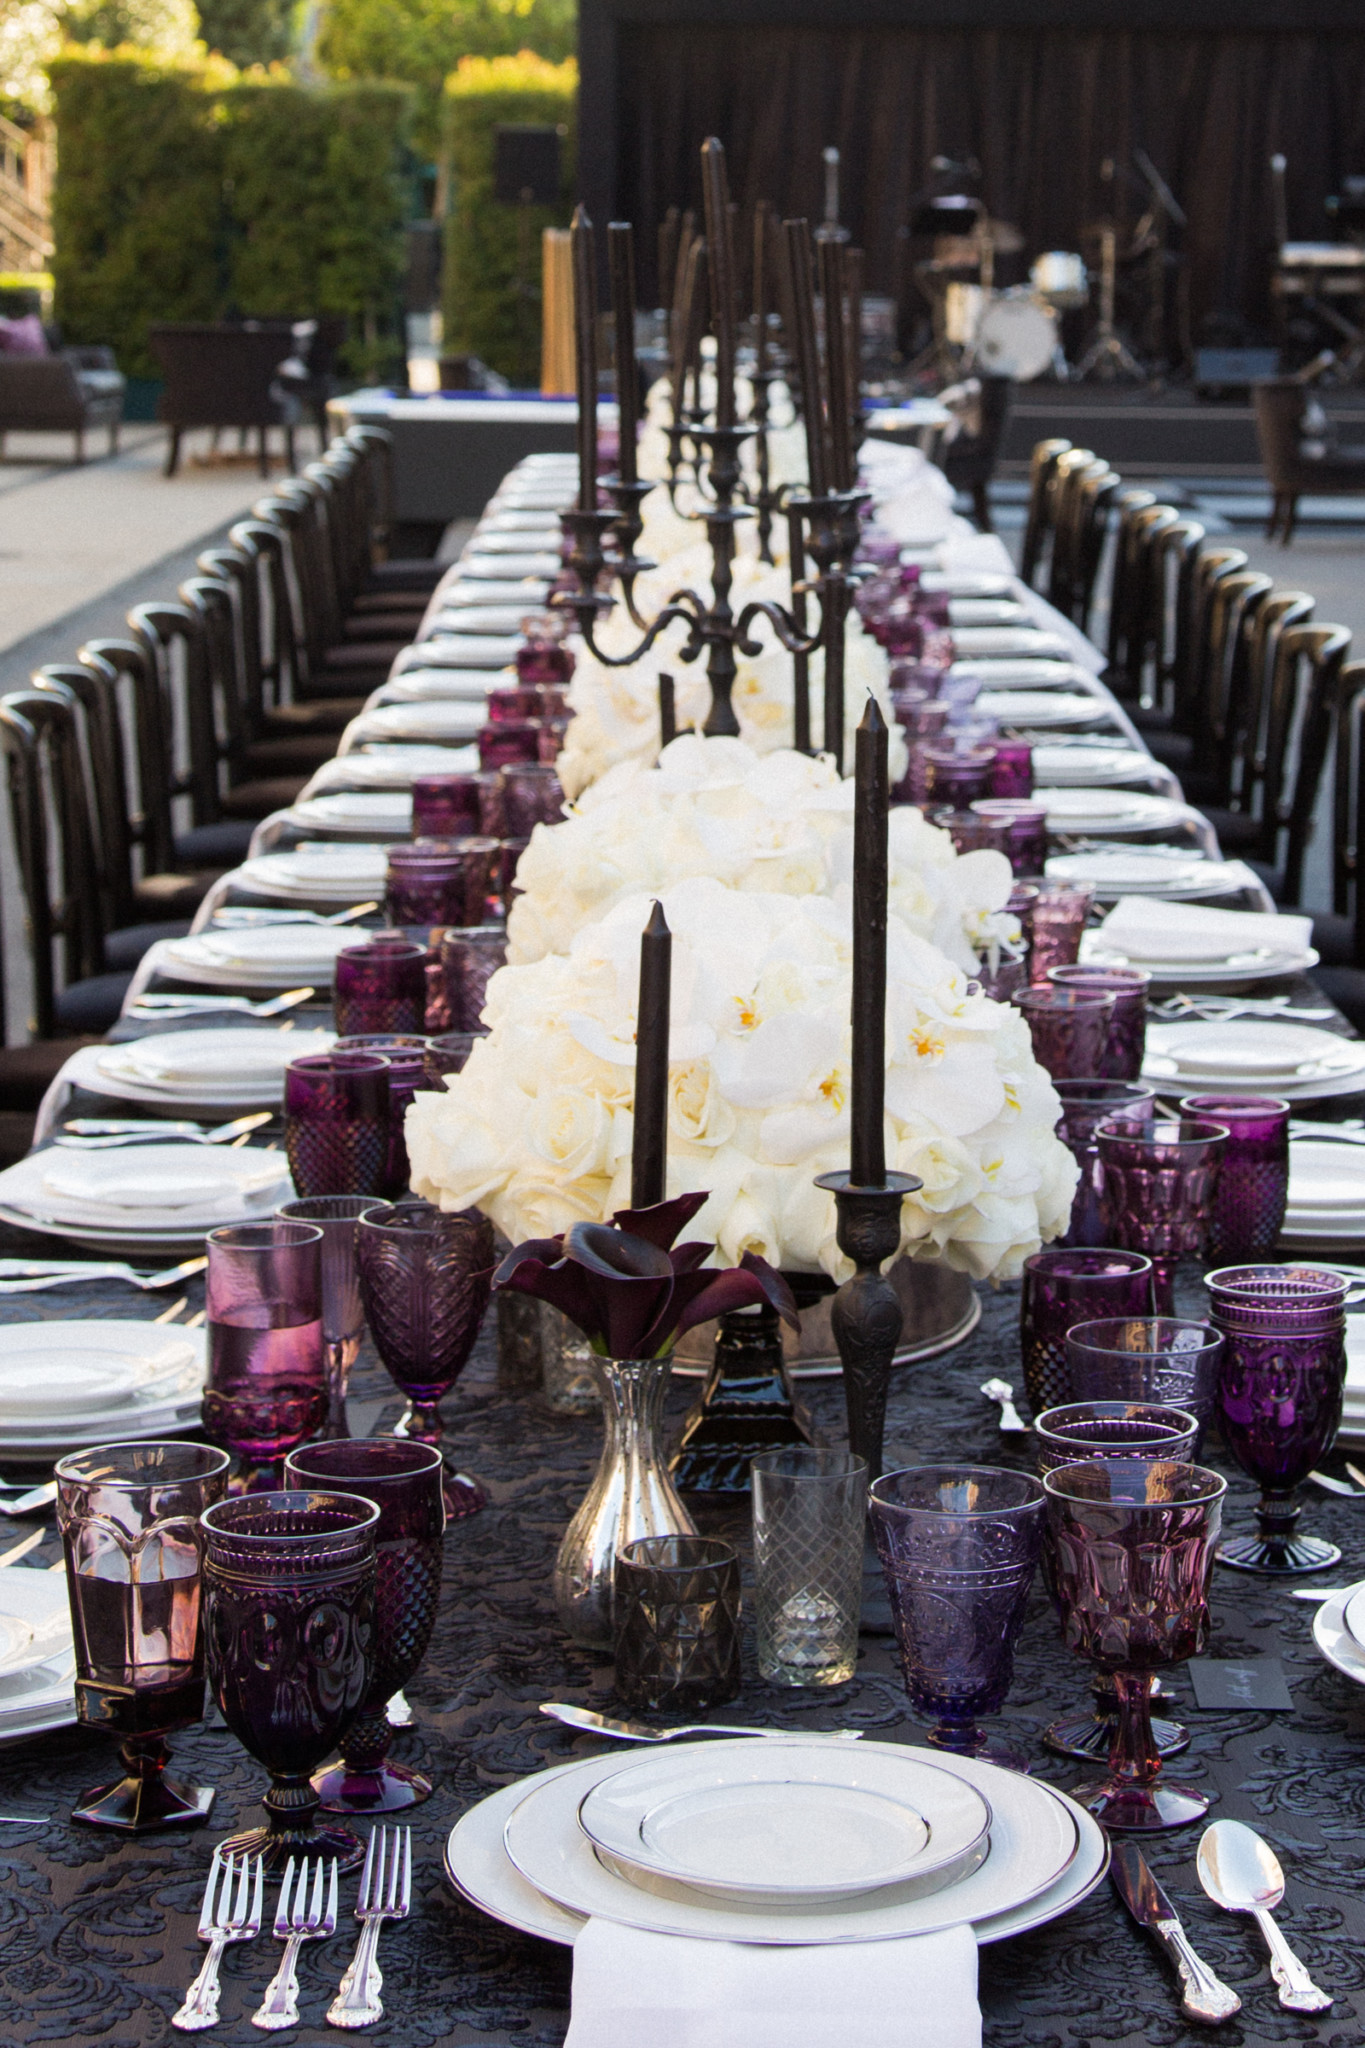 A black and purple tablesetting.